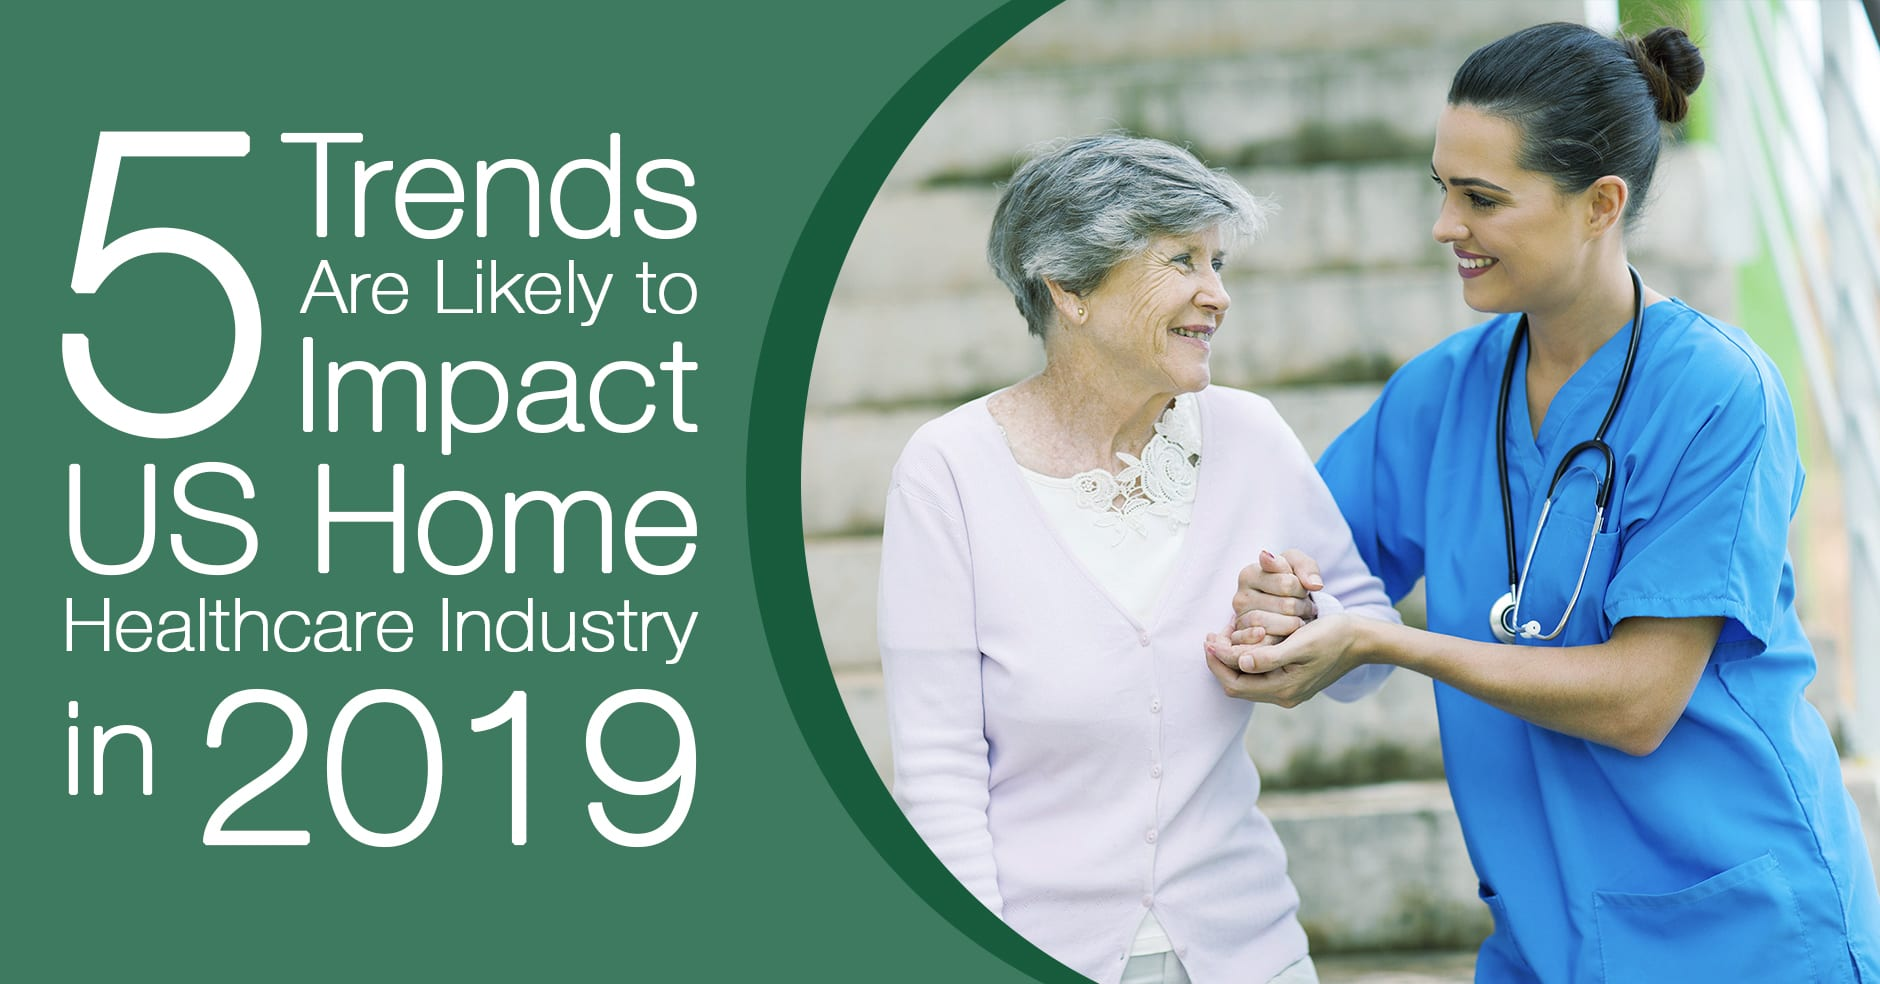 5 Trends that Are Likely to Impact US Home Healthcare Industry in 2019